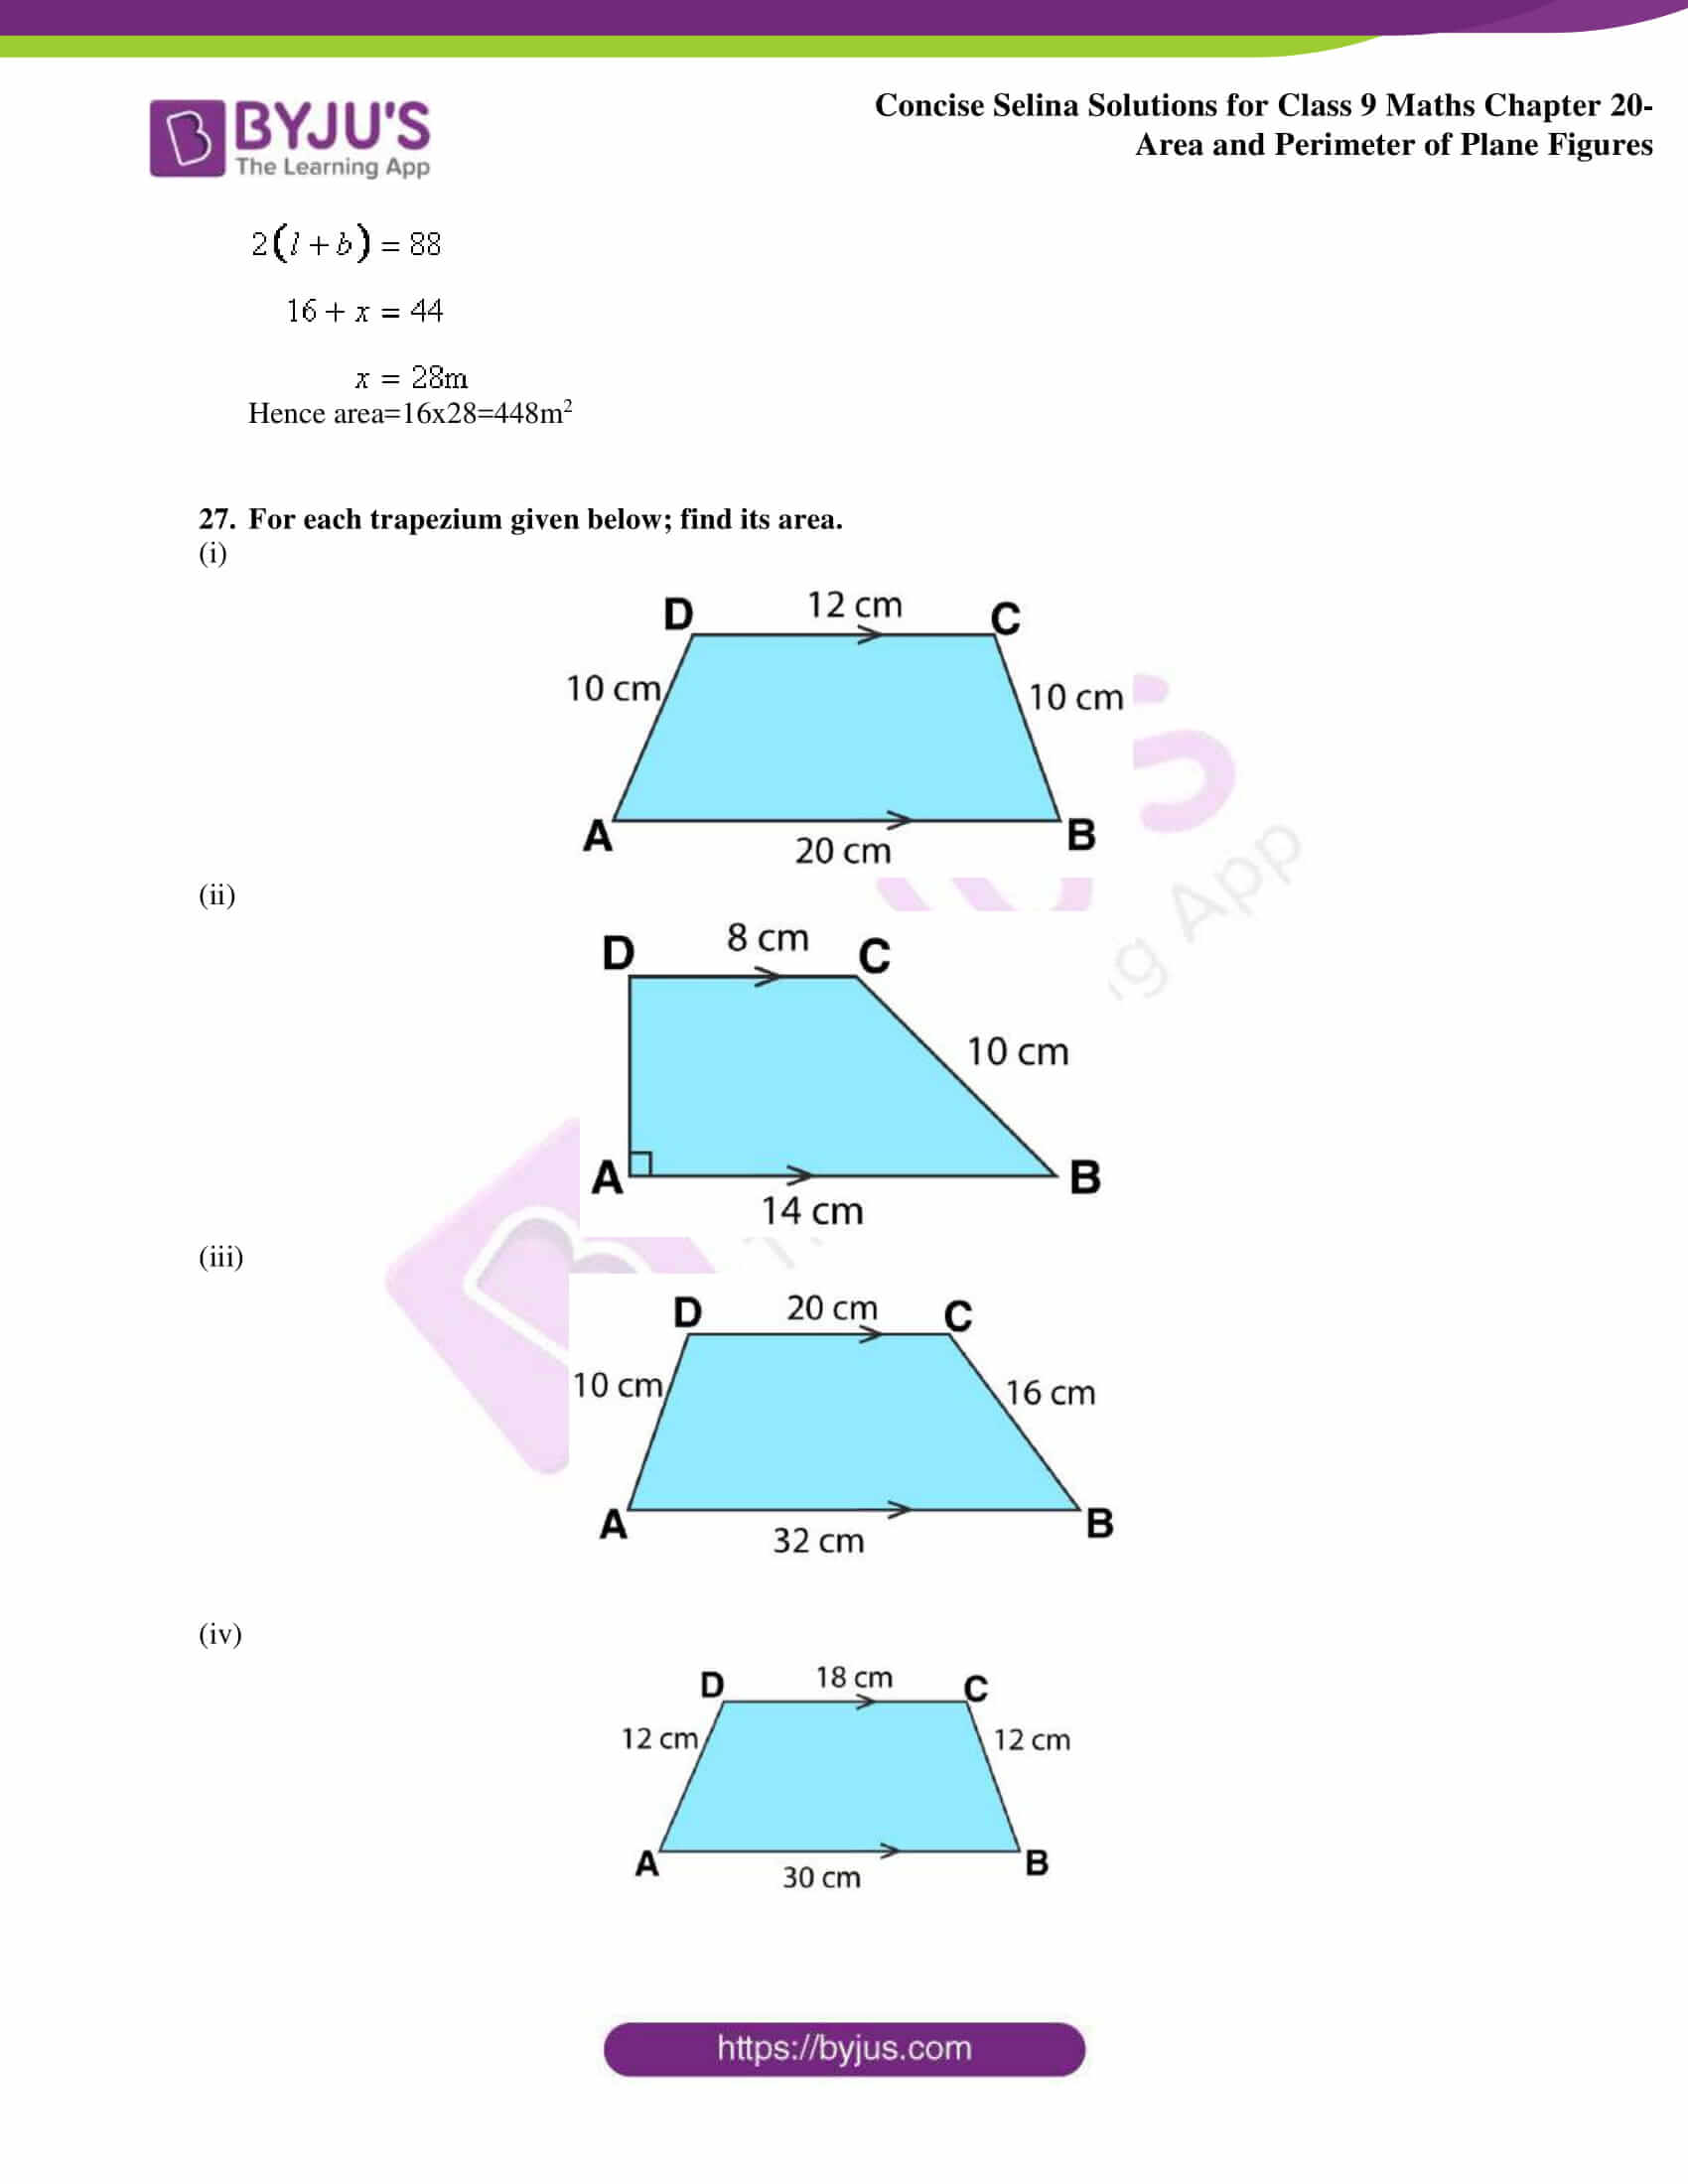 Concise Selina Solutions Class 9 Maths Chapter 20 Area and Perimeter of Plane part 25